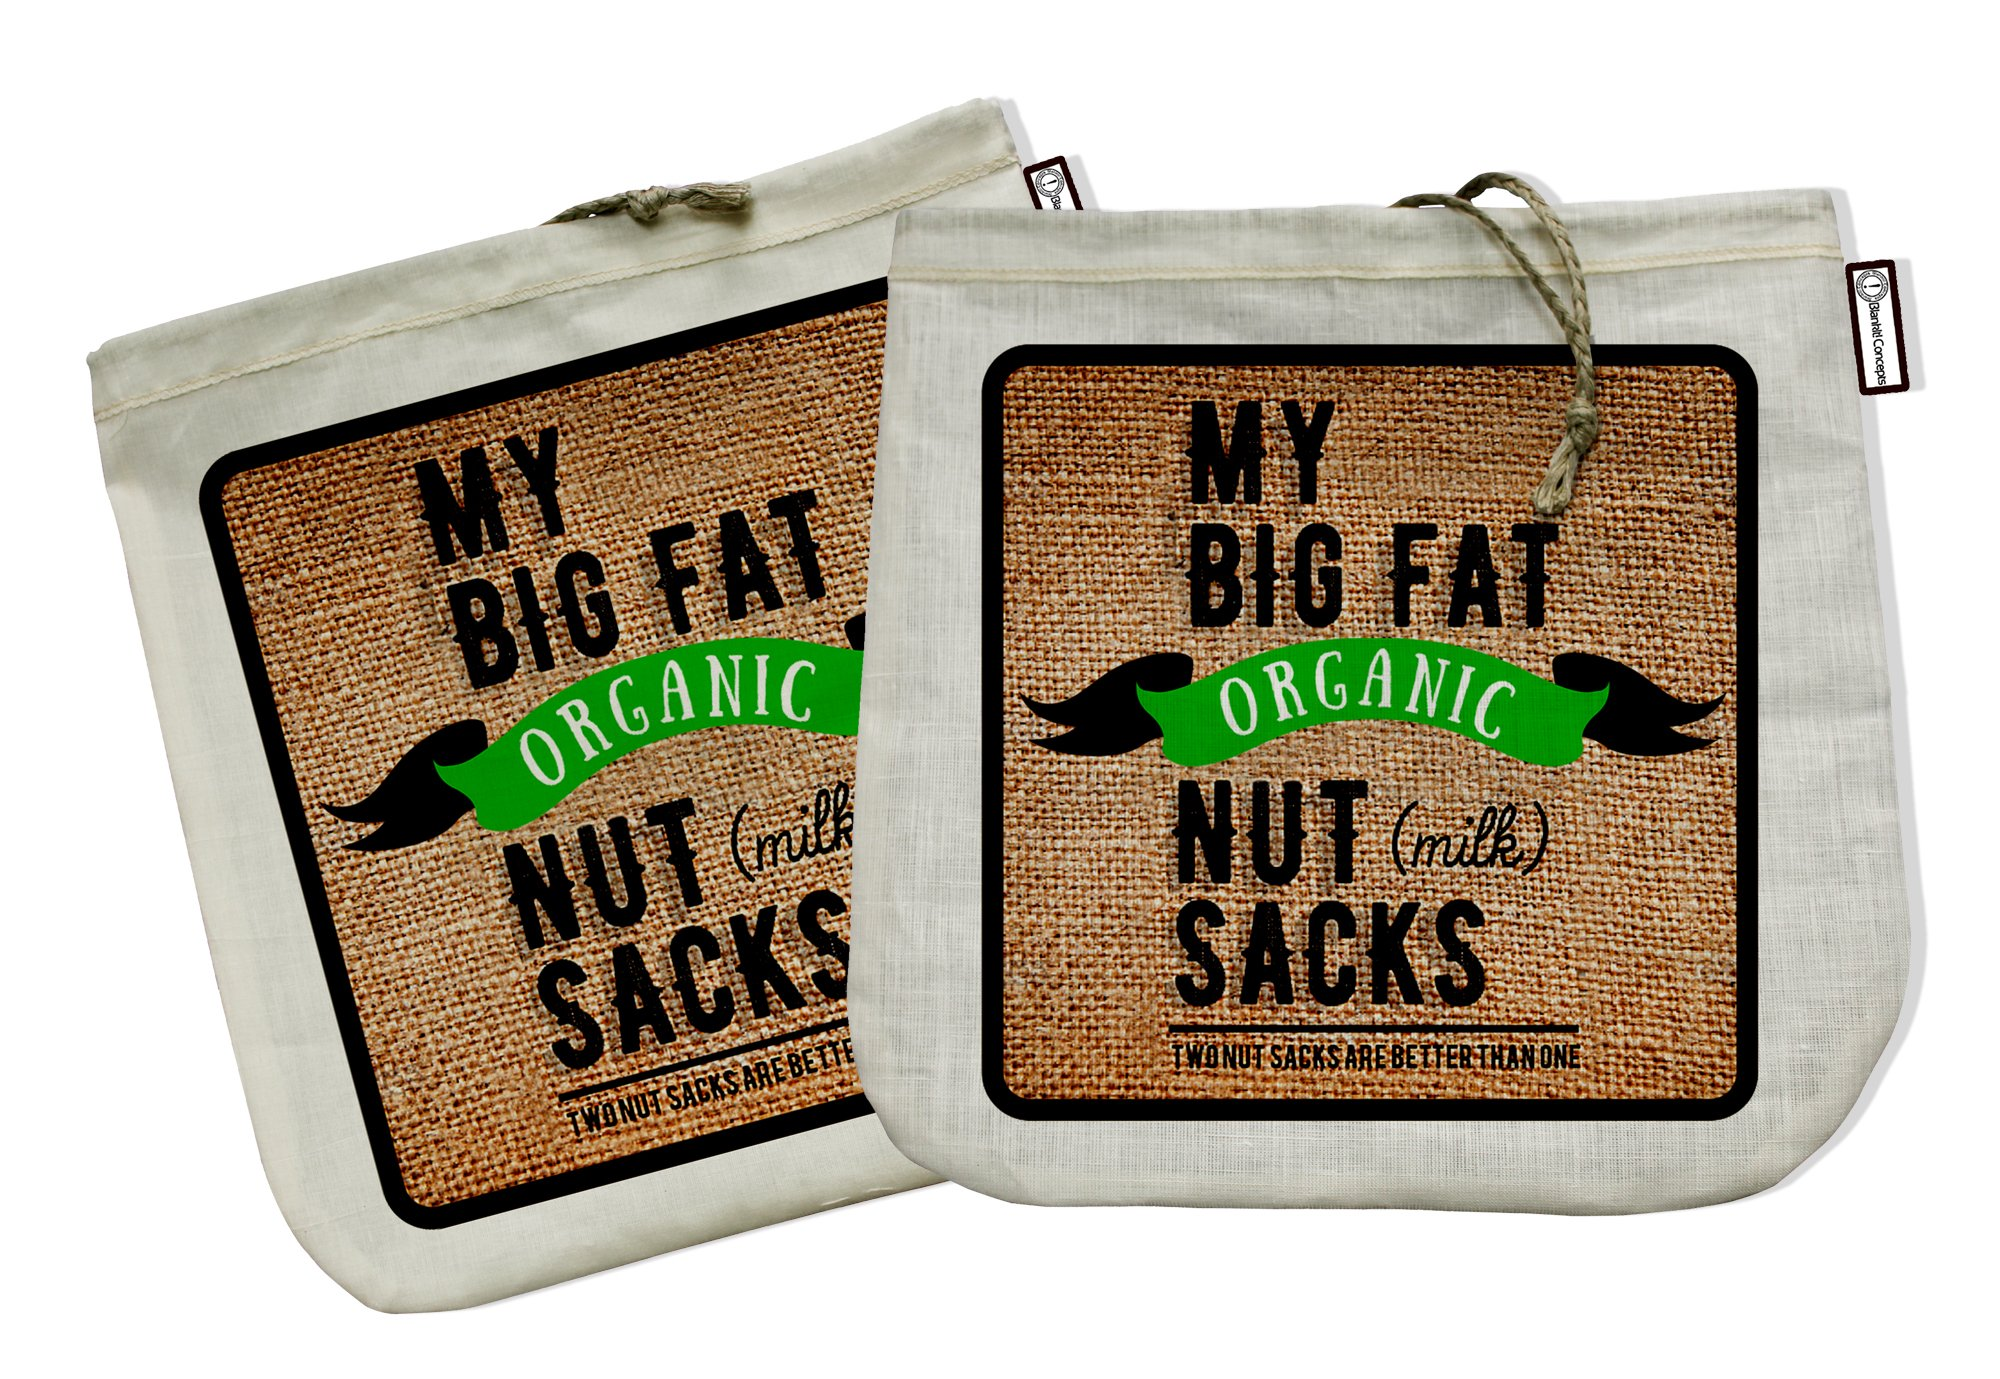 My Big Fat Organic Nut (milk) Sacks. Set of 2 Bags (12''x12'') Commercial Quality Organic Cotton & Hemp Reusable Almond Milk Bag Strainers. Juicing Sprouting Jelly Cheesecloth Coffee Press Tea Sieve